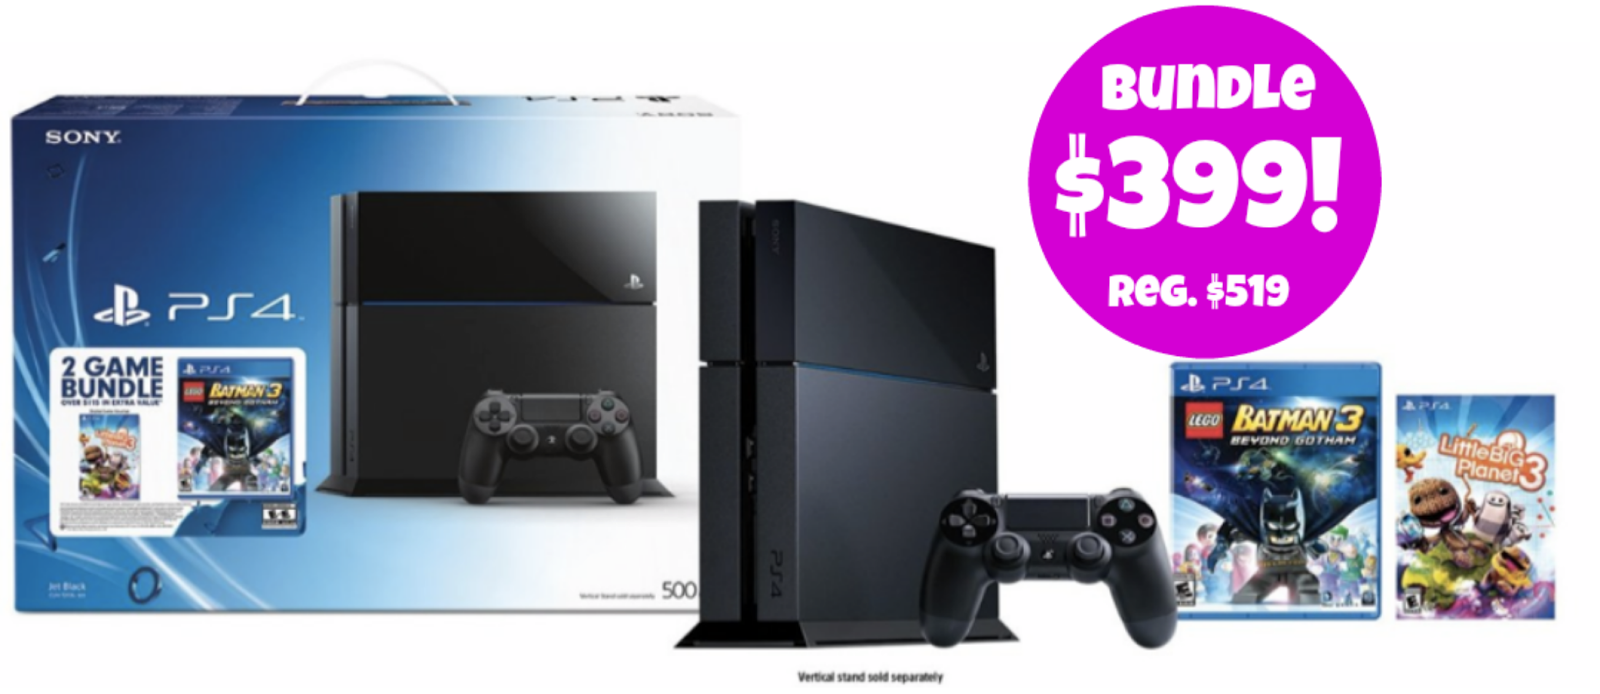 http://www.thebinderladies.com/2014/11/amazon-playstation-4-black-friday.html#.VHiYZYfduyM